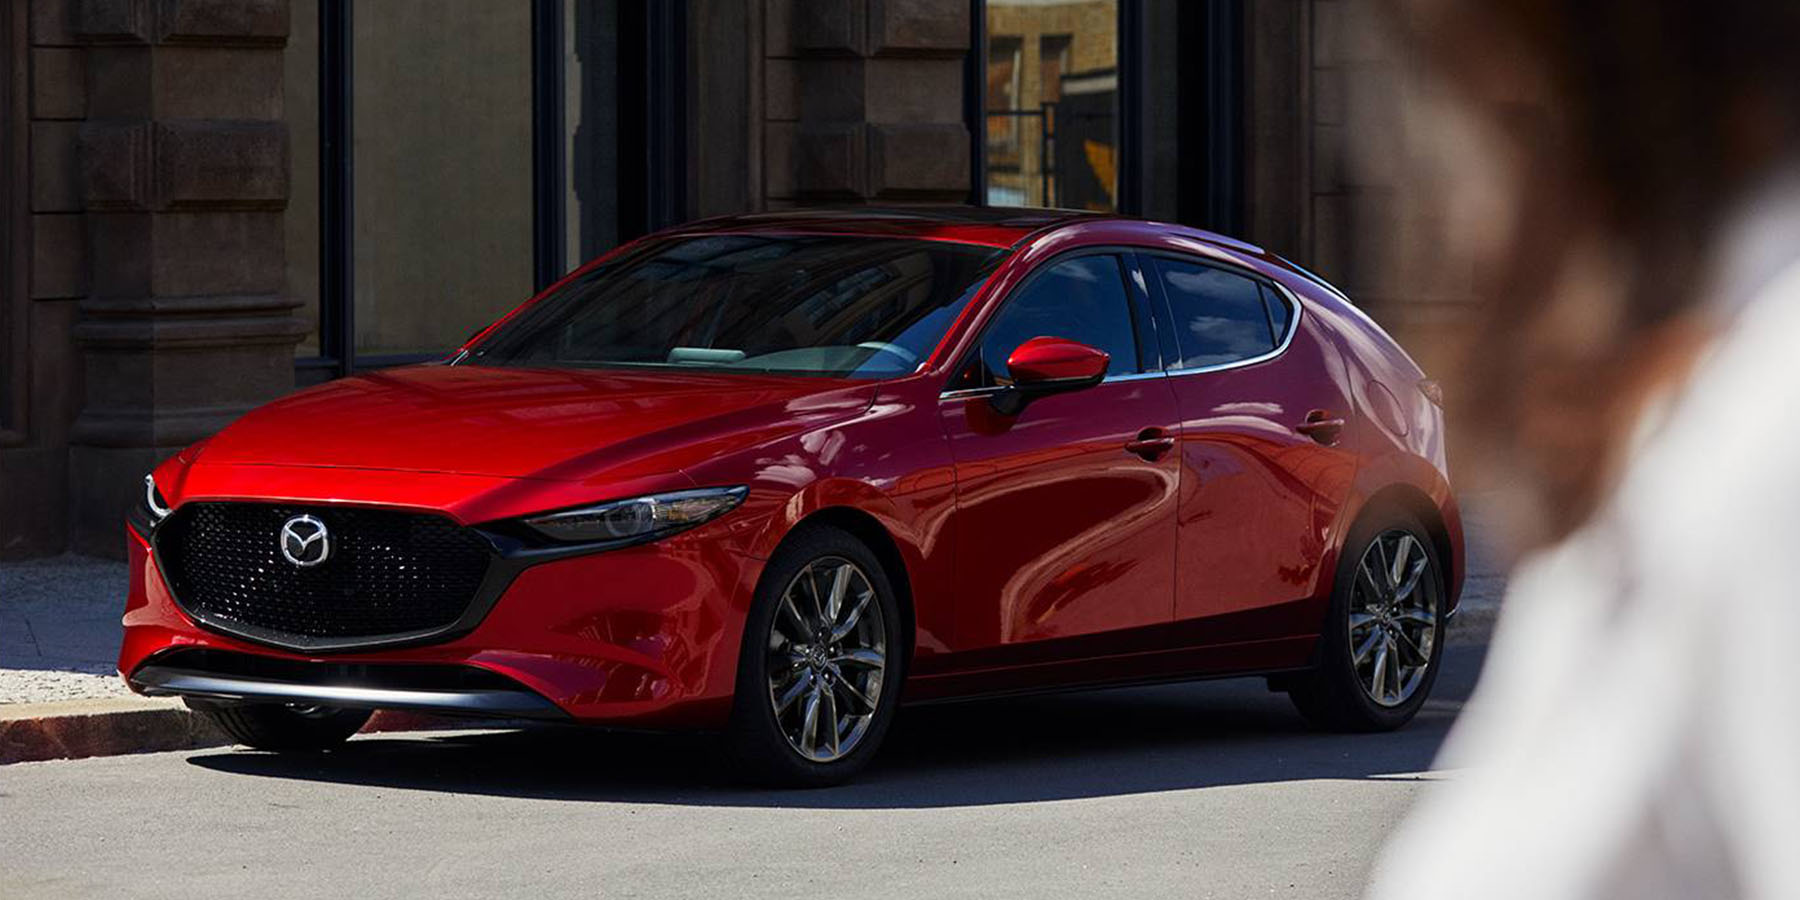 2019 Mazda 3 Hatchback Compact Car 1 Copy